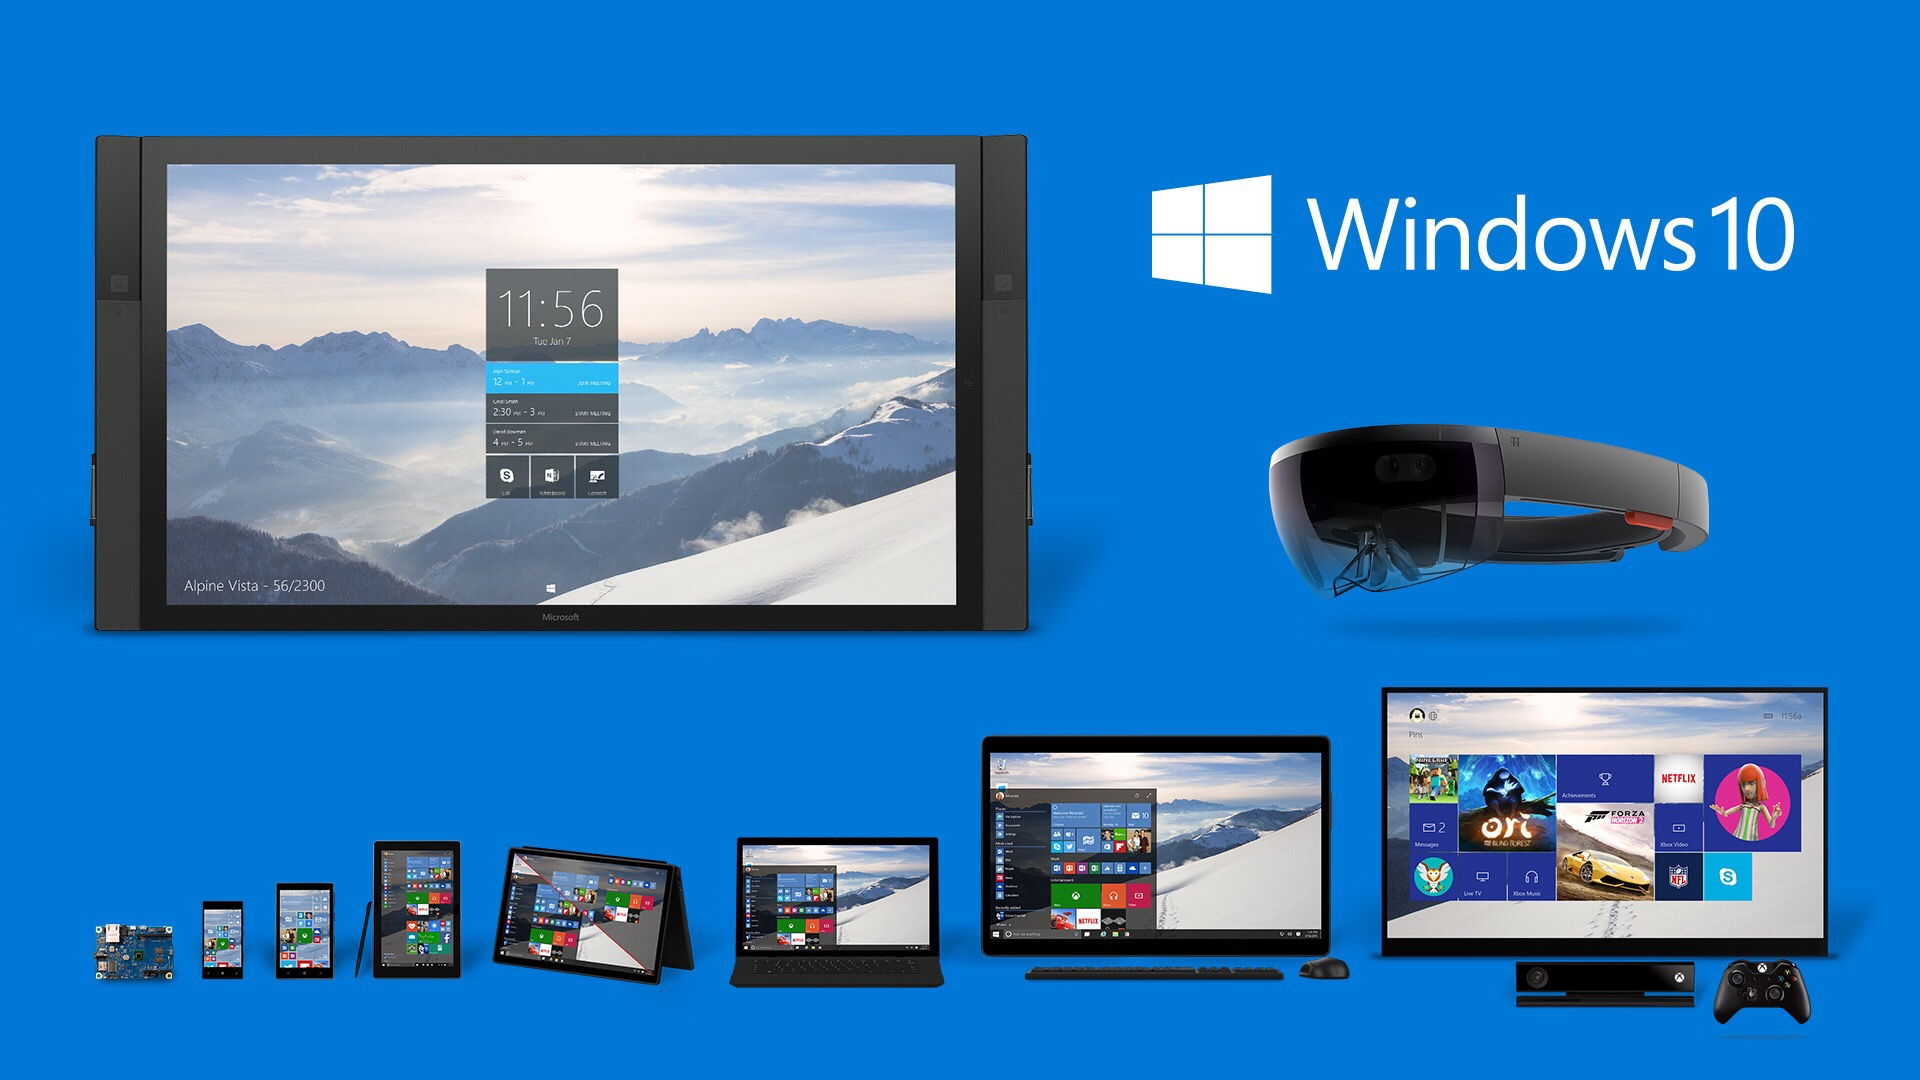 Is Windows 10 really free? http://t.co/PtRE4dtg79 #privacy #windows10 #timsabre